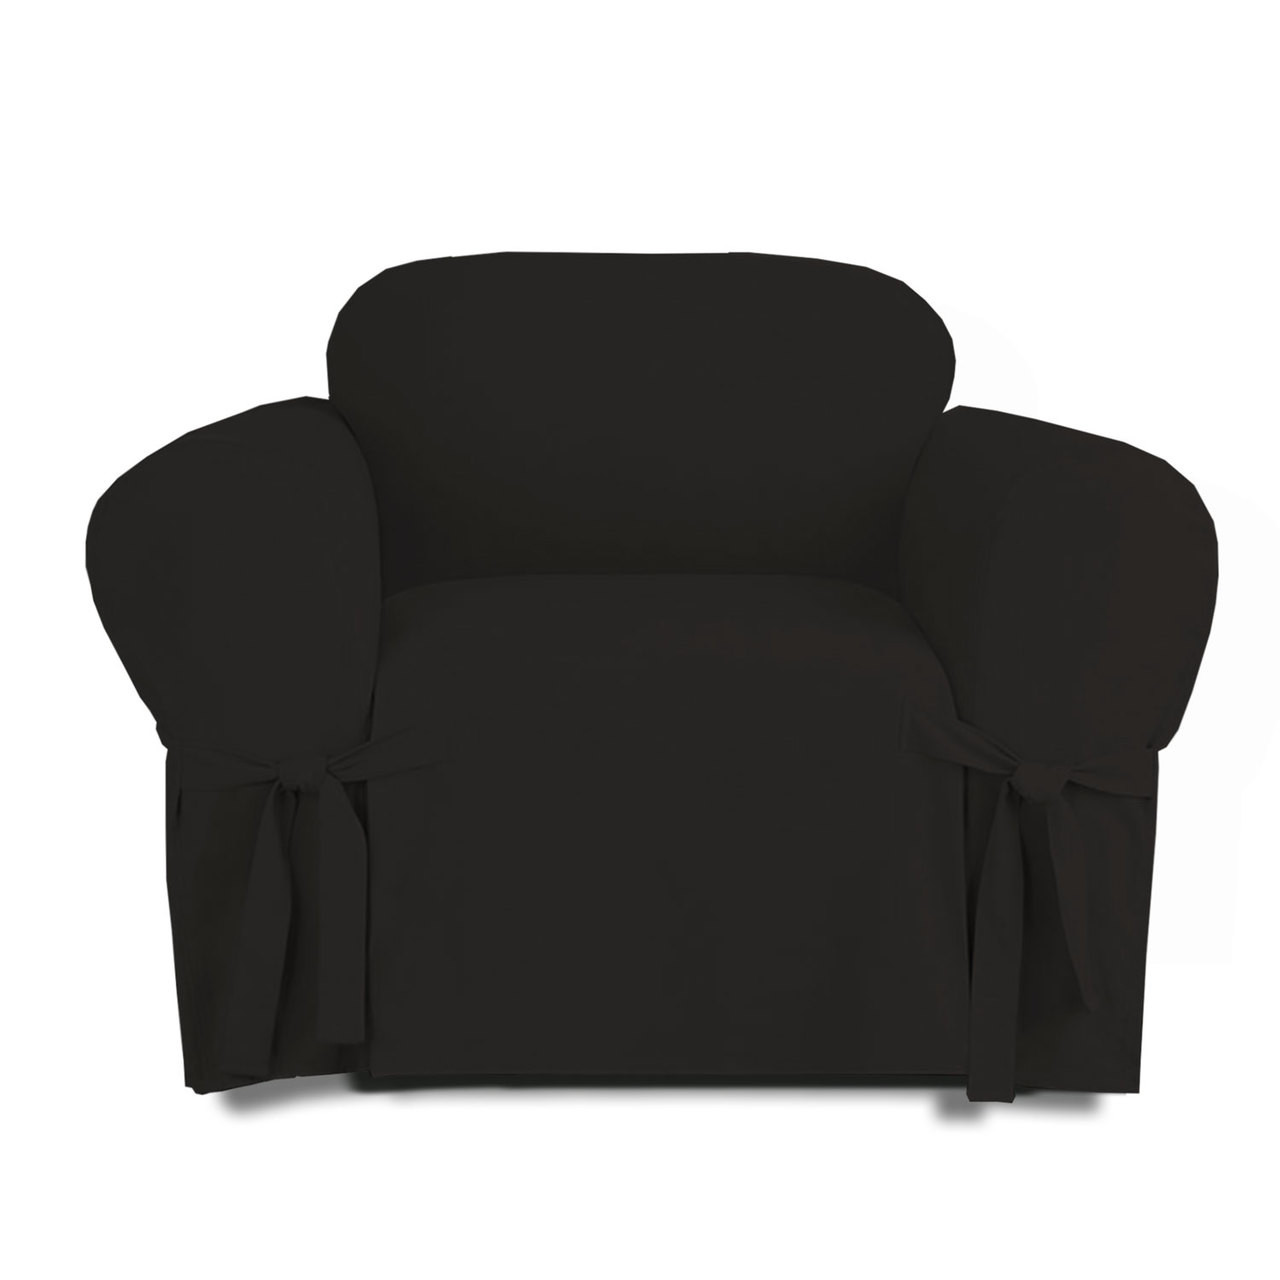 Charmant Linen Store Microsuede Slipcover, Furniture Protector Cover Chair Black